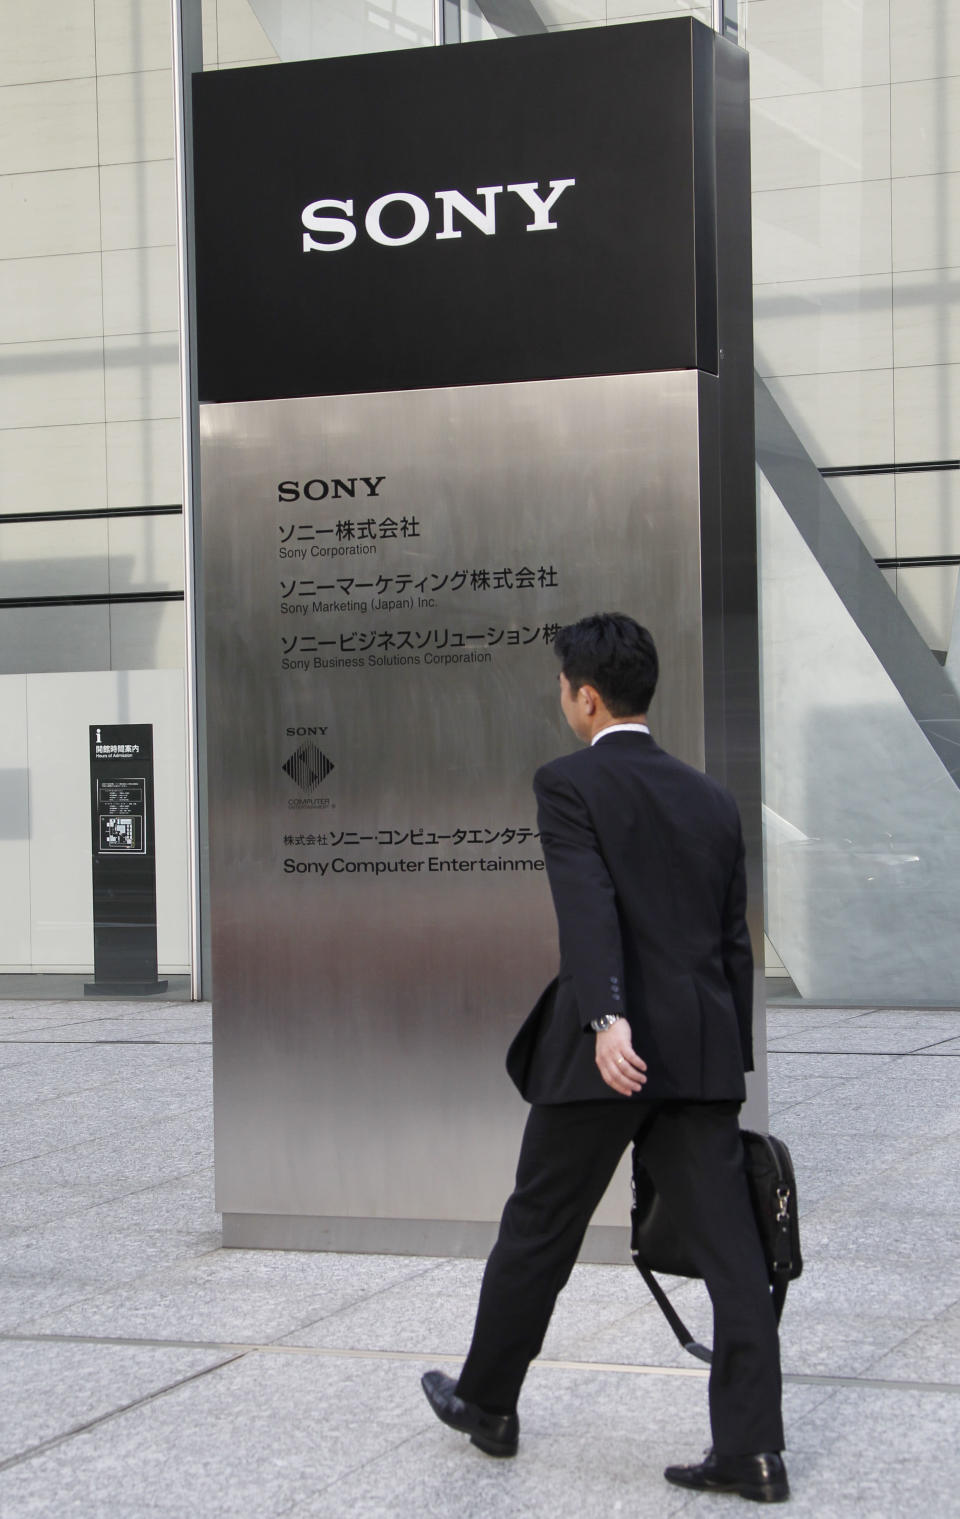 A man walks to the headquarters of Sony Corp. in Tokyo Tuesday, April 10, 2012. Sony more than doubled Tuesday its projected annual loss to 520 billion yen ($6.4 billion), its worst red ink ever, due to a massive tax charge. (AP Photo/Koji Sasahara)